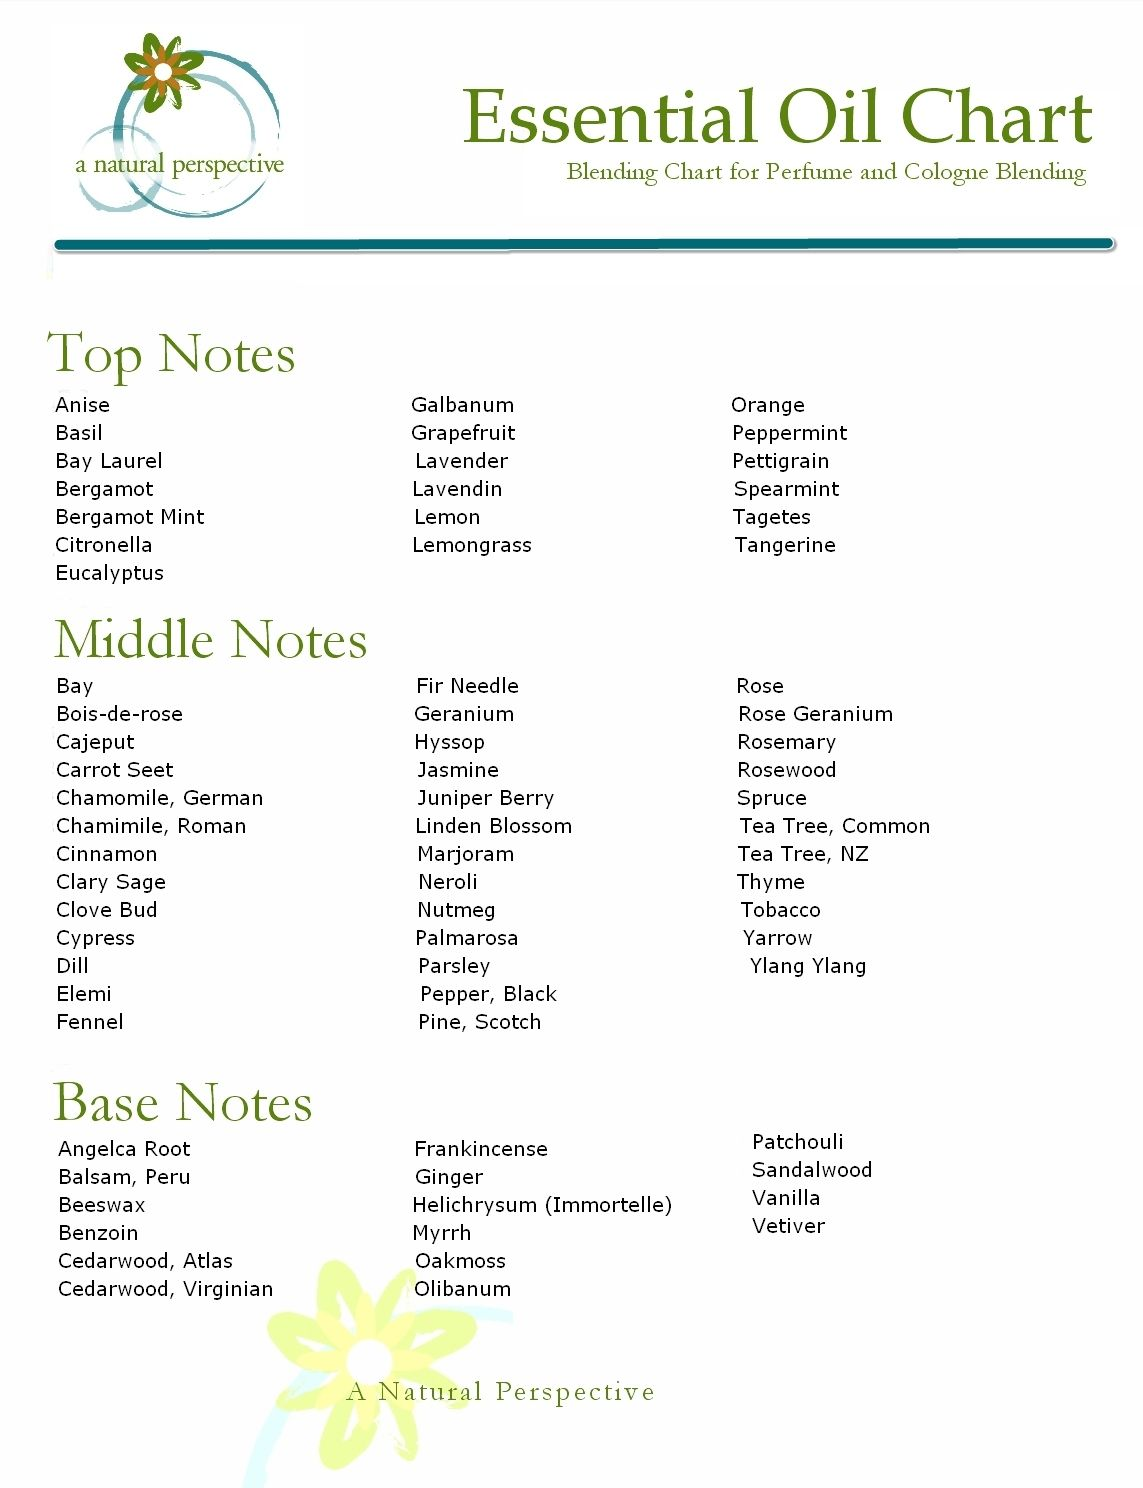 natural perspective essential oil blending chart for perfume and cologne making download also how to distill oils pinterest rh